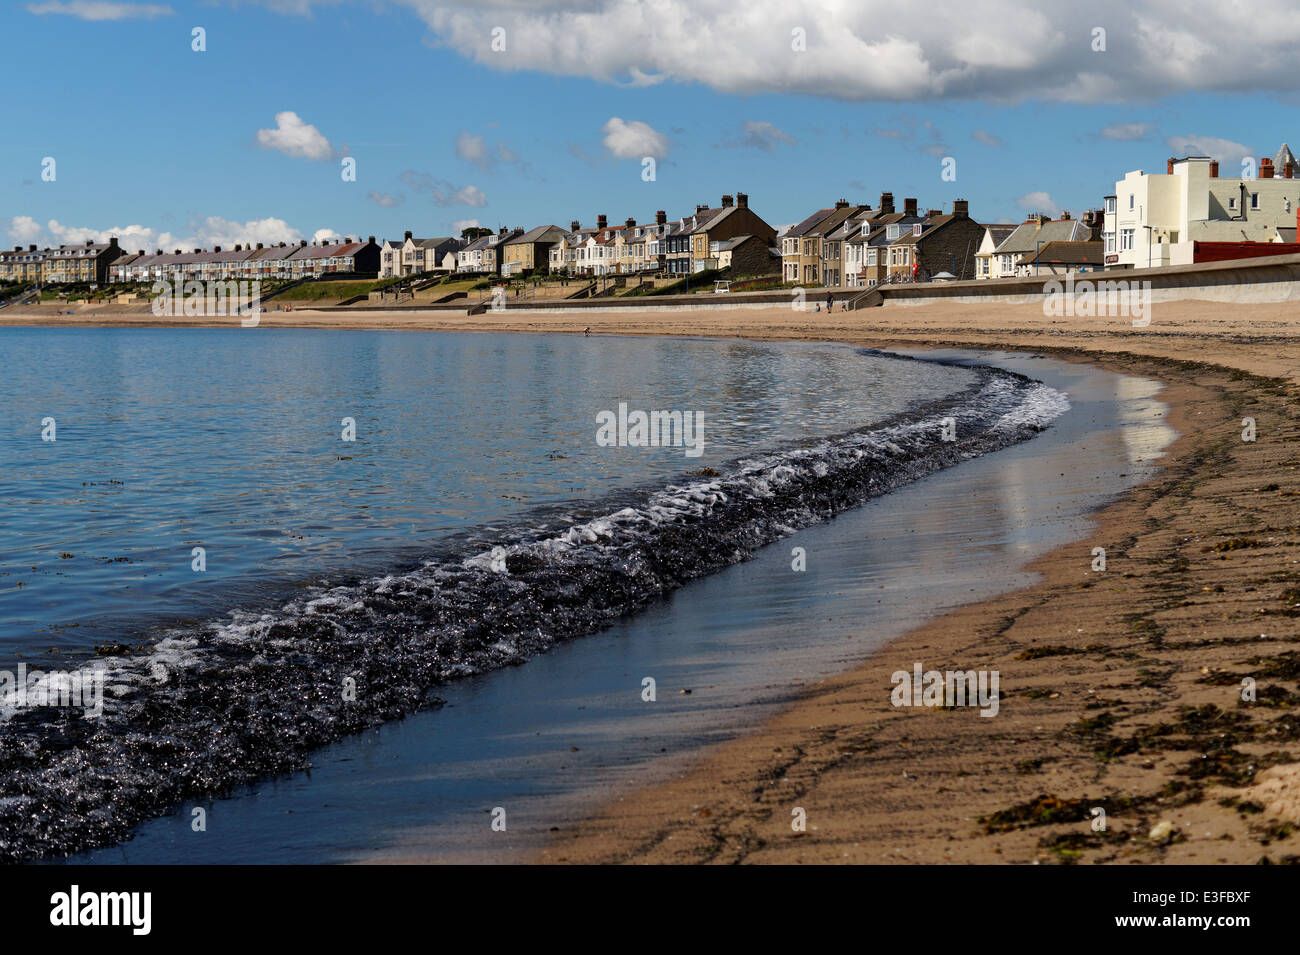 Black Sand on the beach in Newbiggin by the Sea in North East England - Stock Image